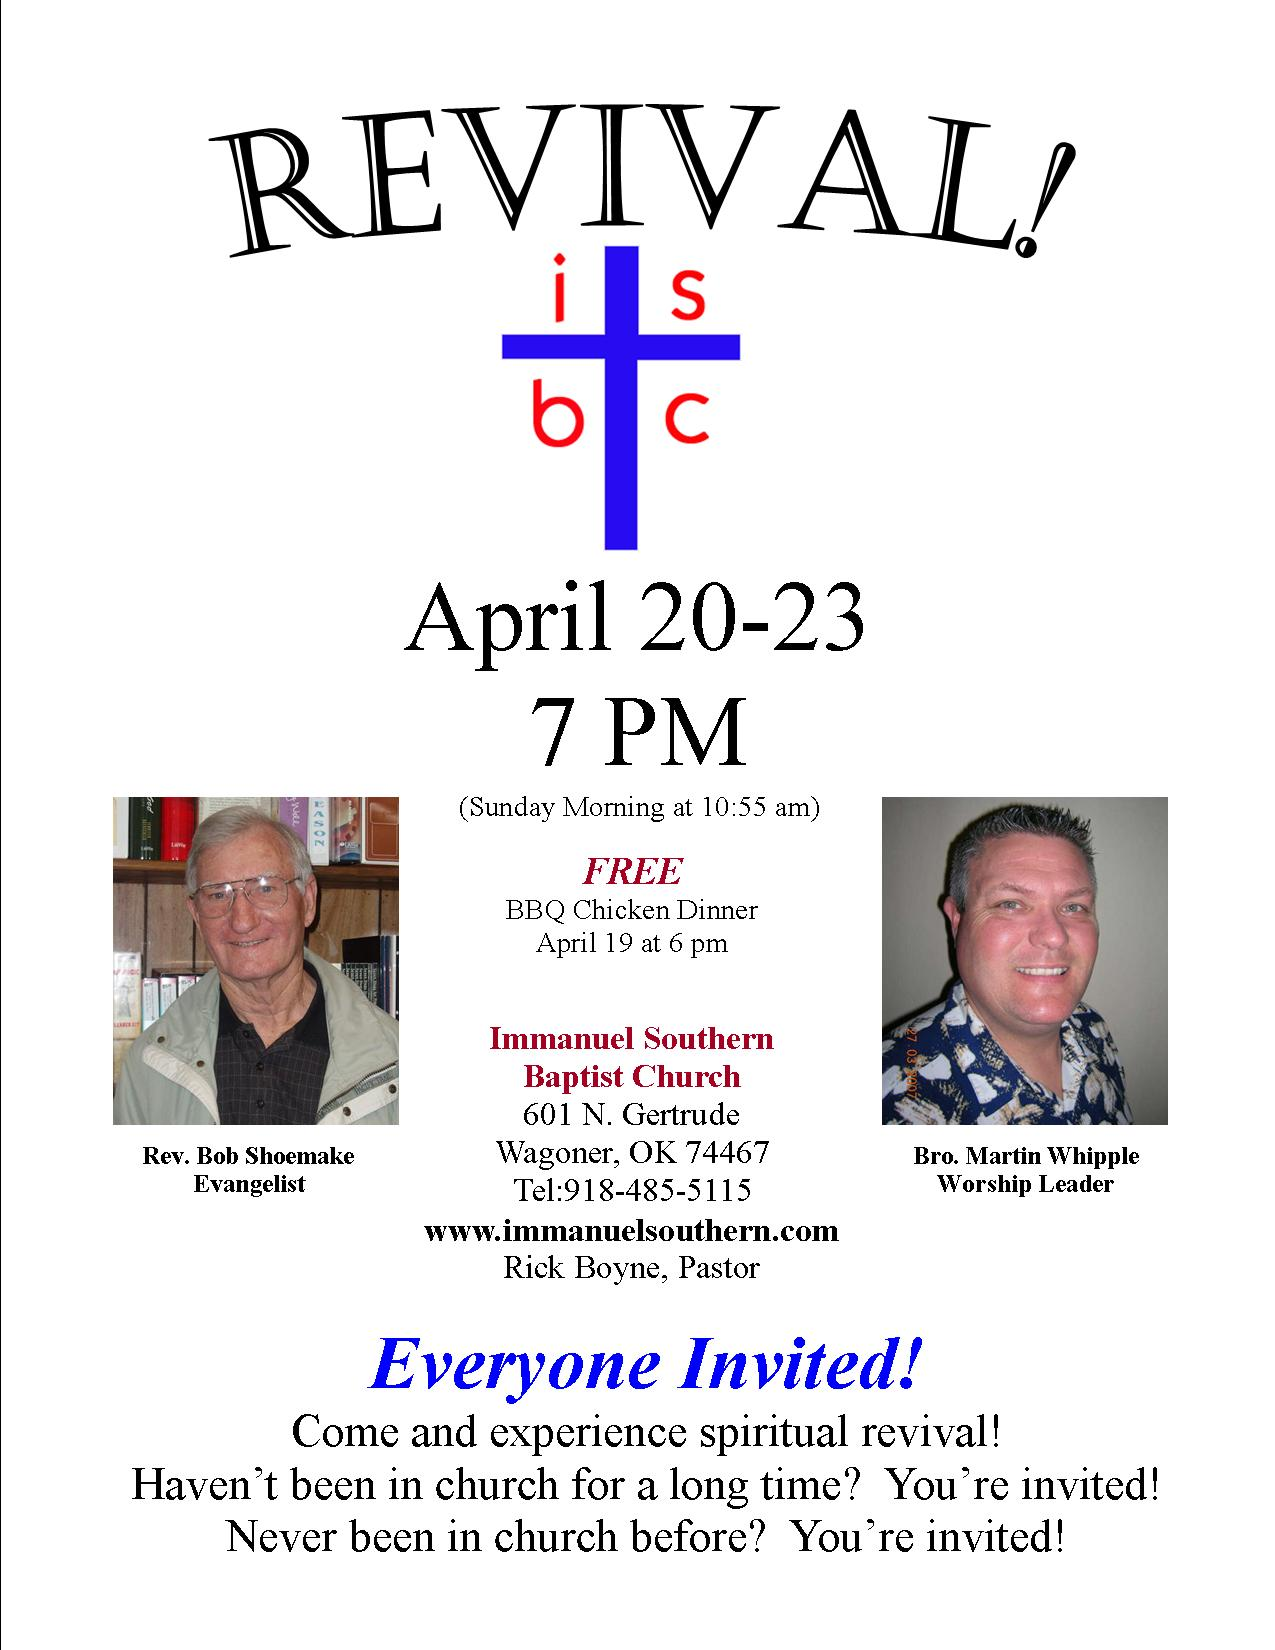 revival flyerchurch revival flyer 4 10 from 33 votes church revival flyer 5 10 from DJTuFA6o